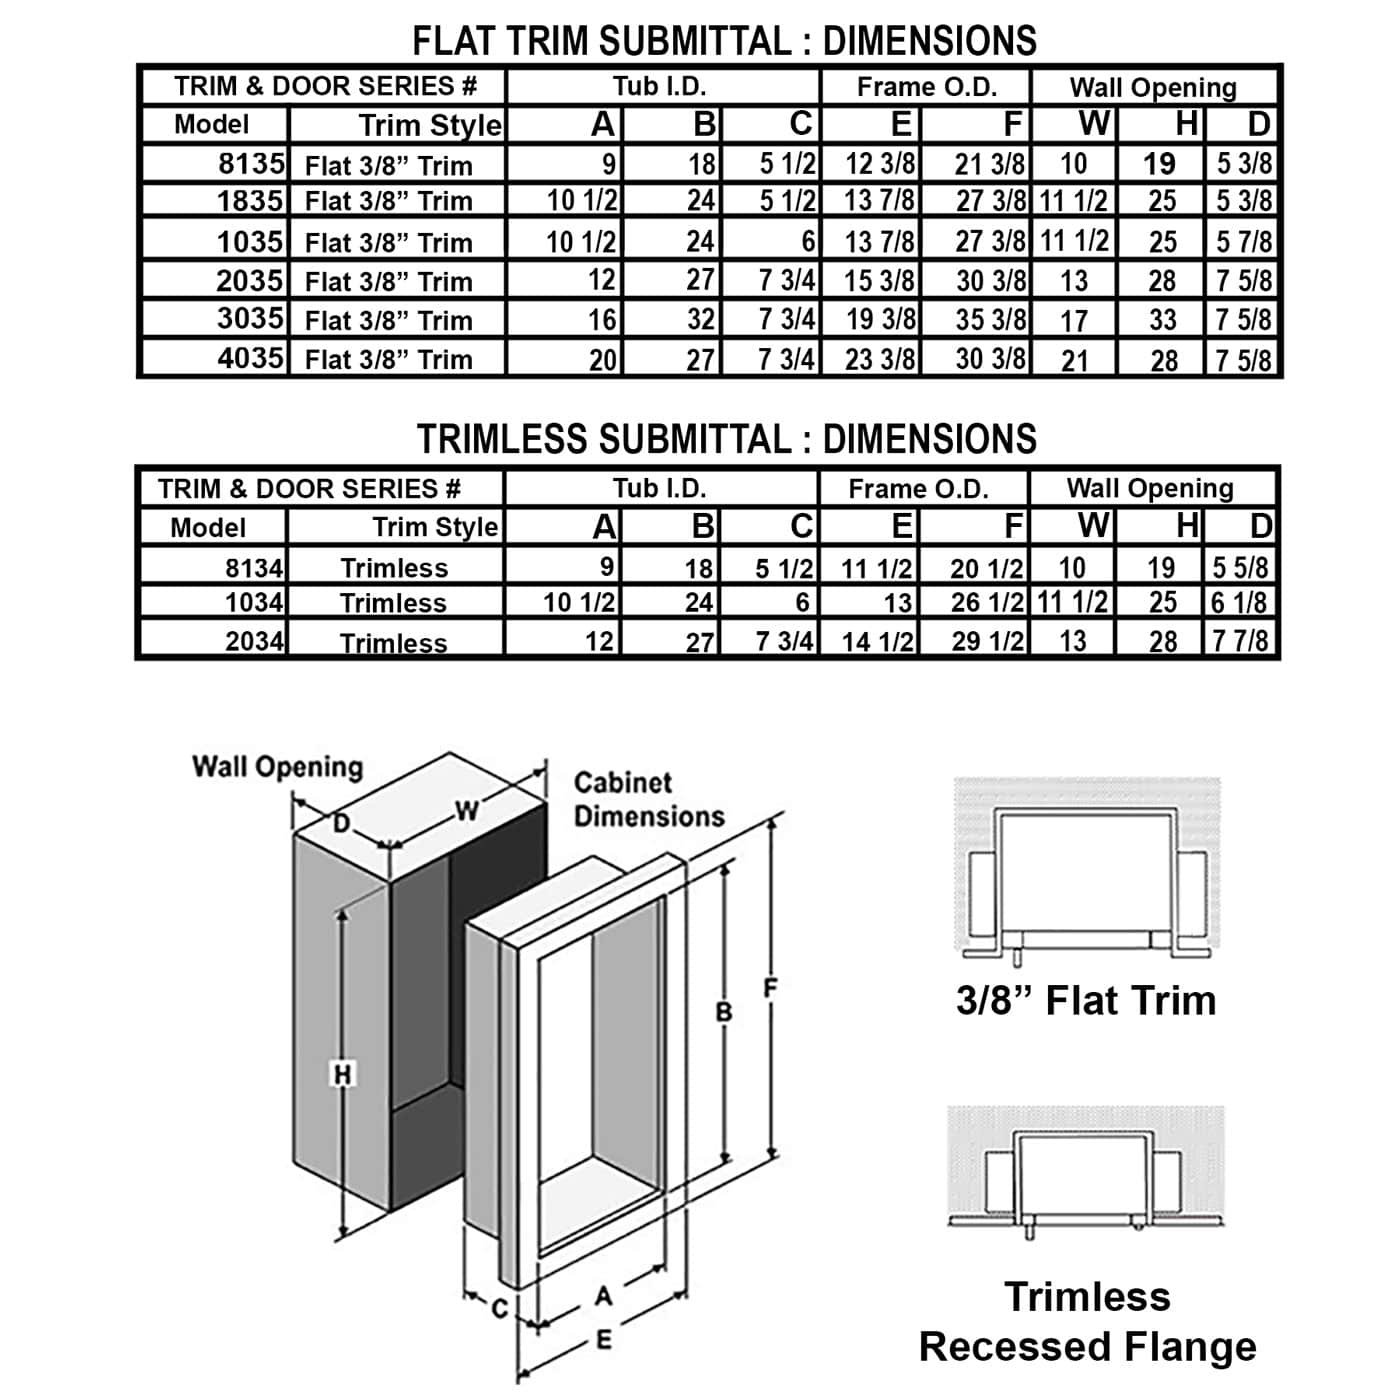 Recessed Stainless Steel Fire Extinguisher Cabinet - Cosmopolitan JL Industries Submittal Data